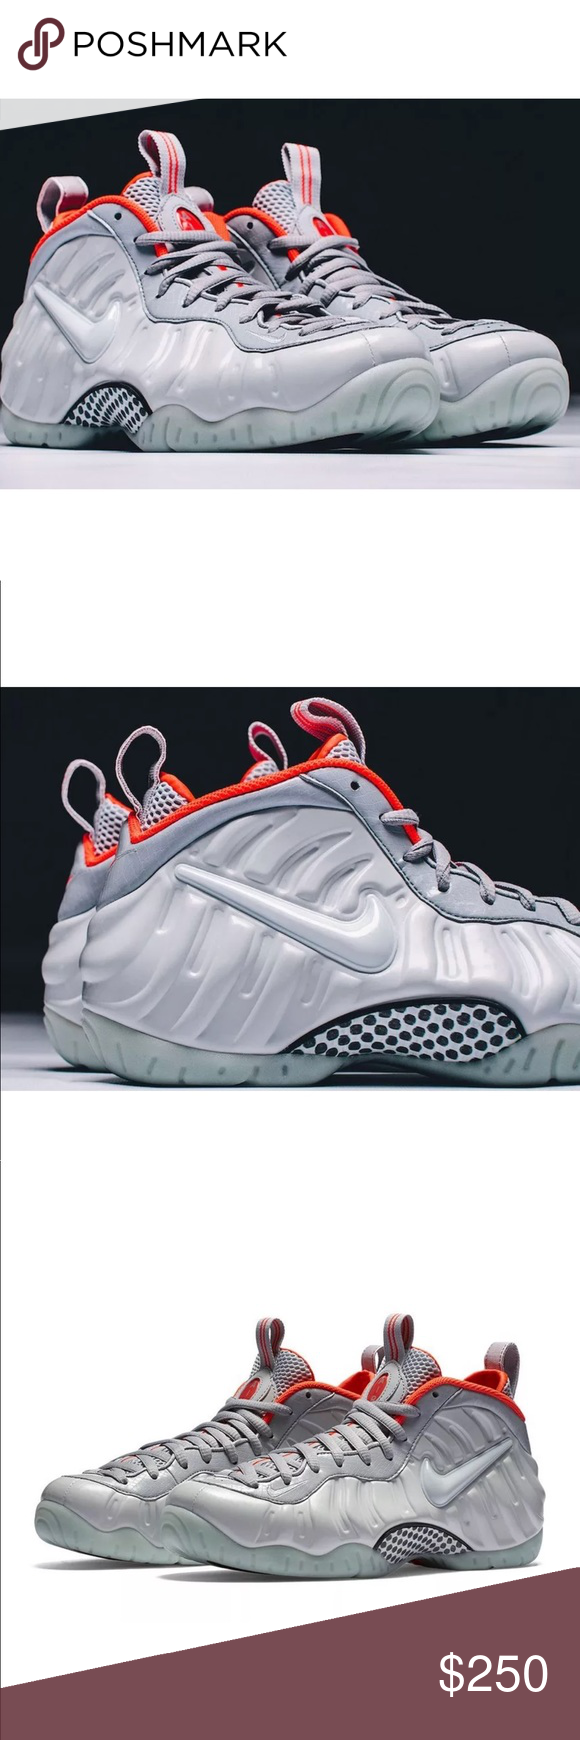 new styles 30a2f 9ba35 Nike Air Foamposite Pro PRM Yeezy PLATINUM Wolf Grey Size 8.5 Excellent  Condition Like New - Worn Once Rare! Nike Shoes Sneakers